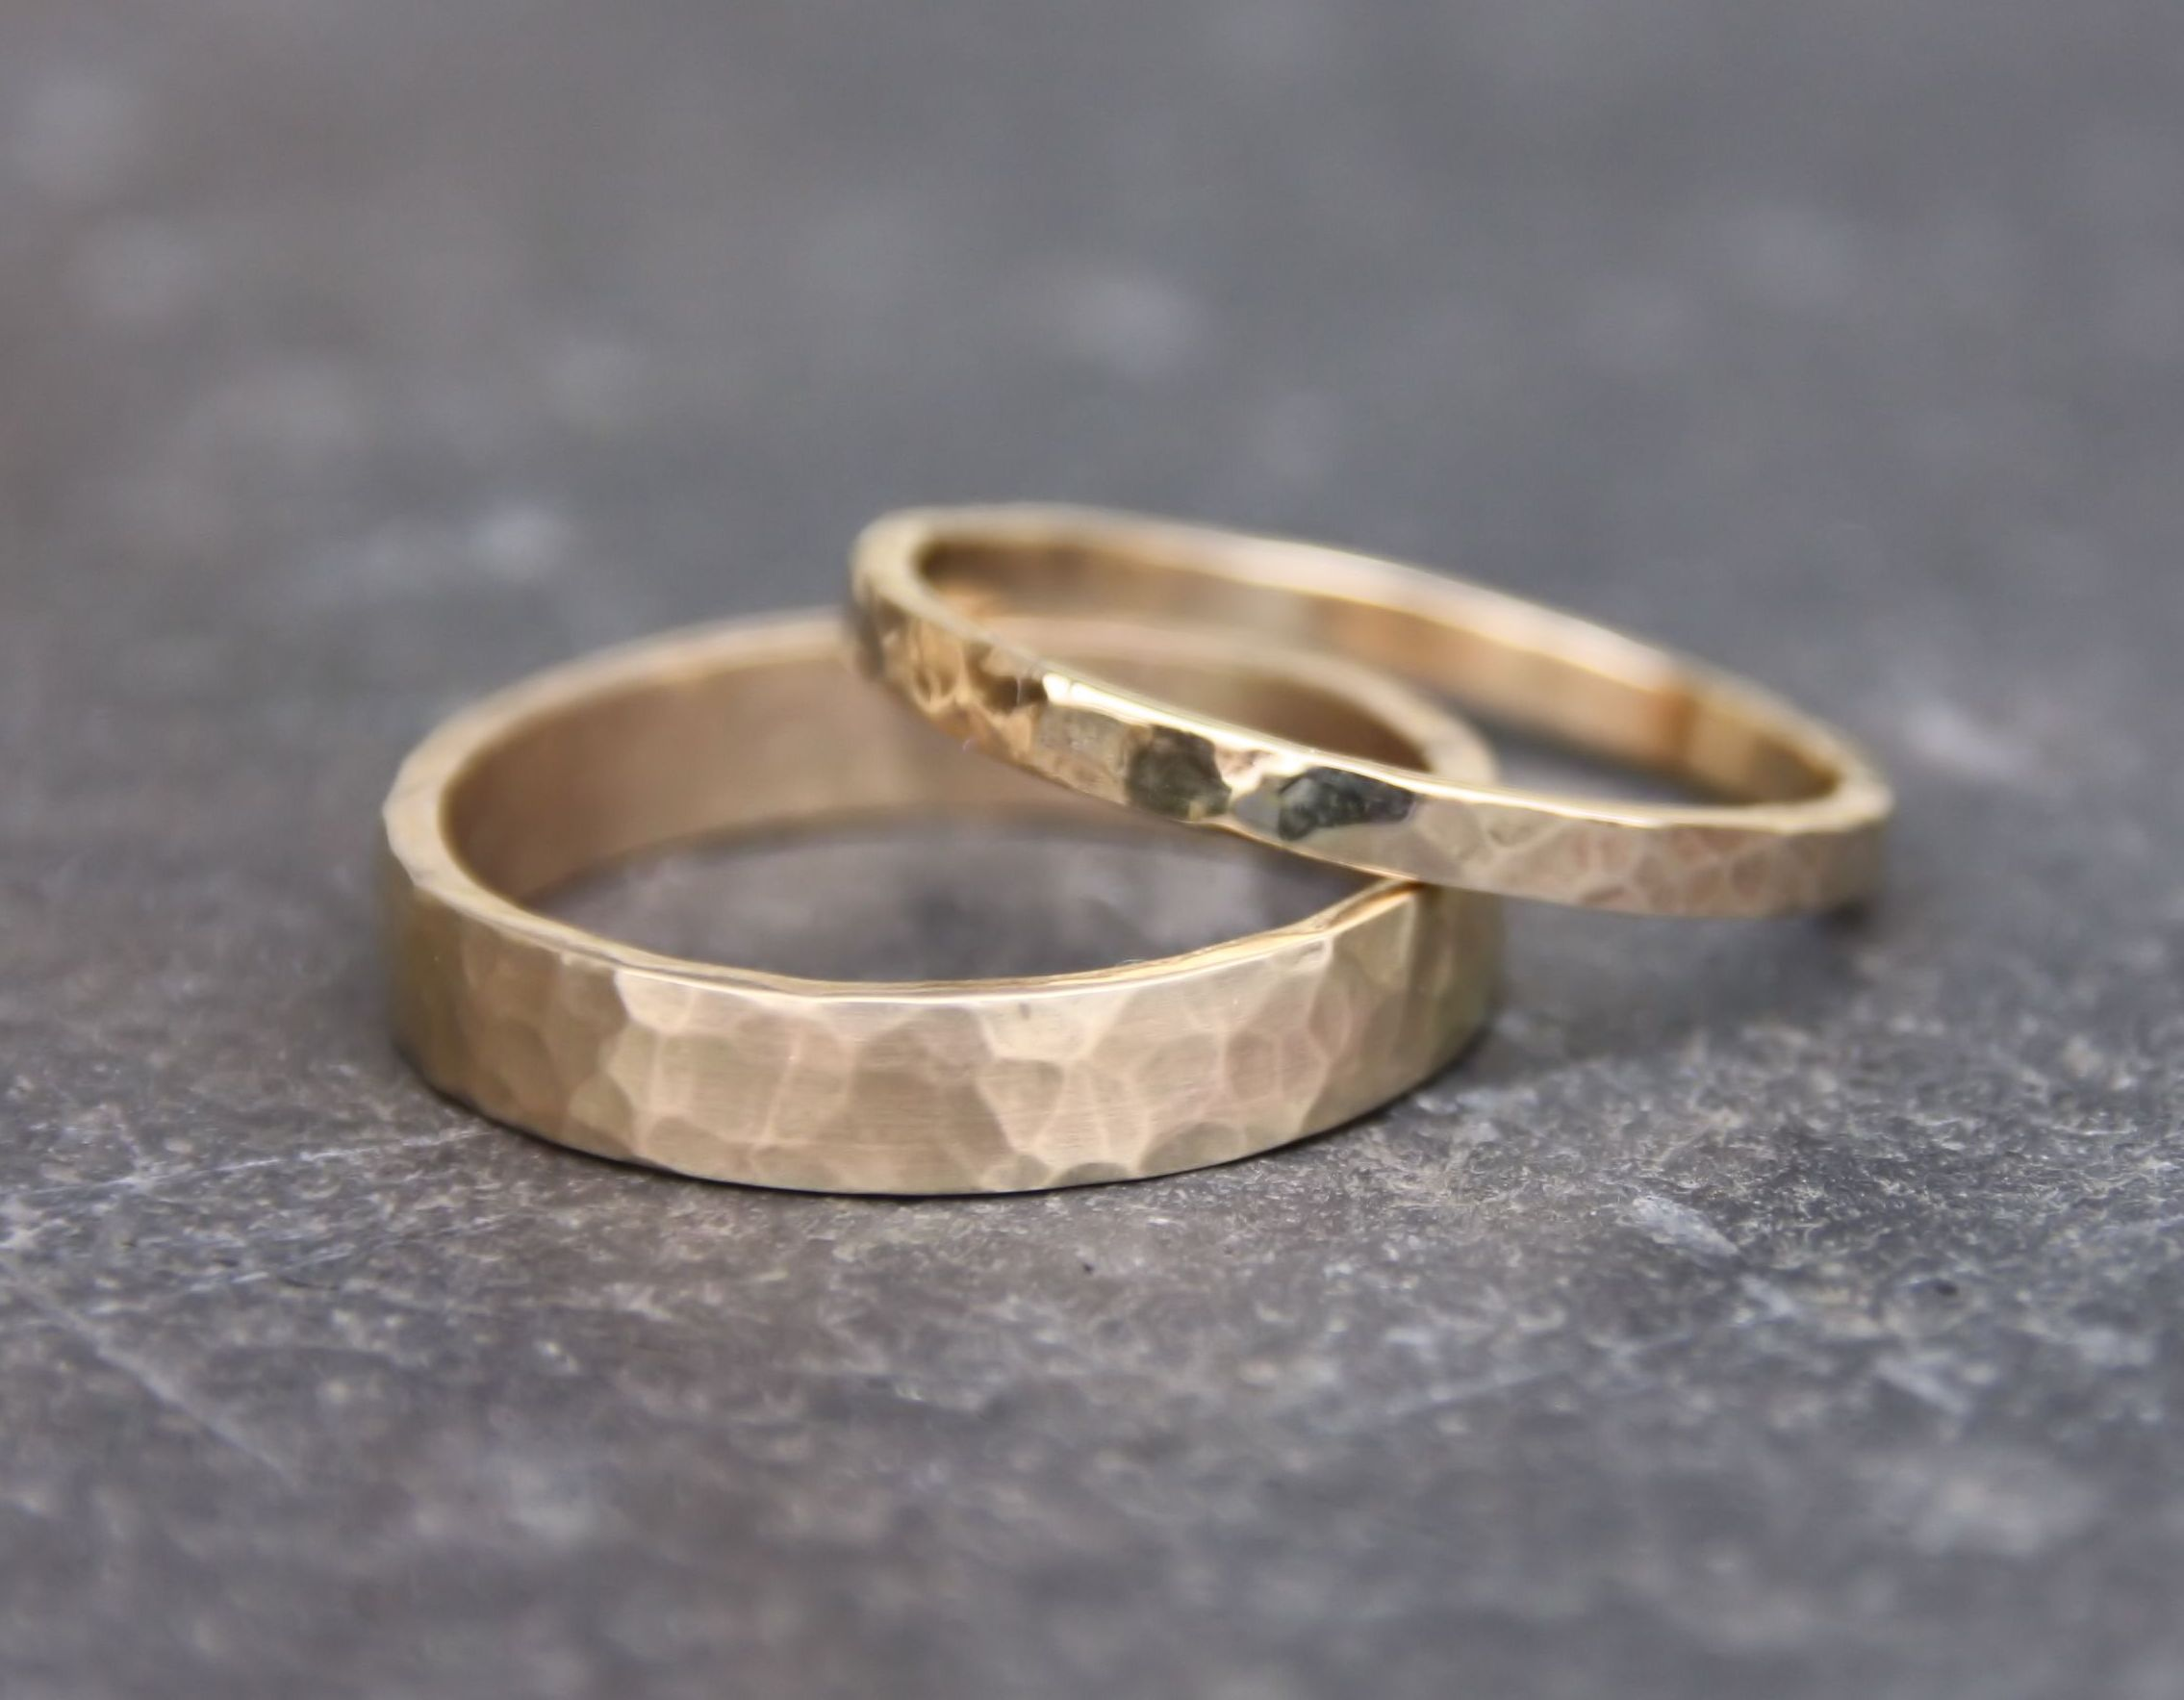 Hammered Gold Wedding Rings   Gold Ring Set   His And Hers   Eco Friendly  Recycled Gold   Matching Gold Wedding Rings